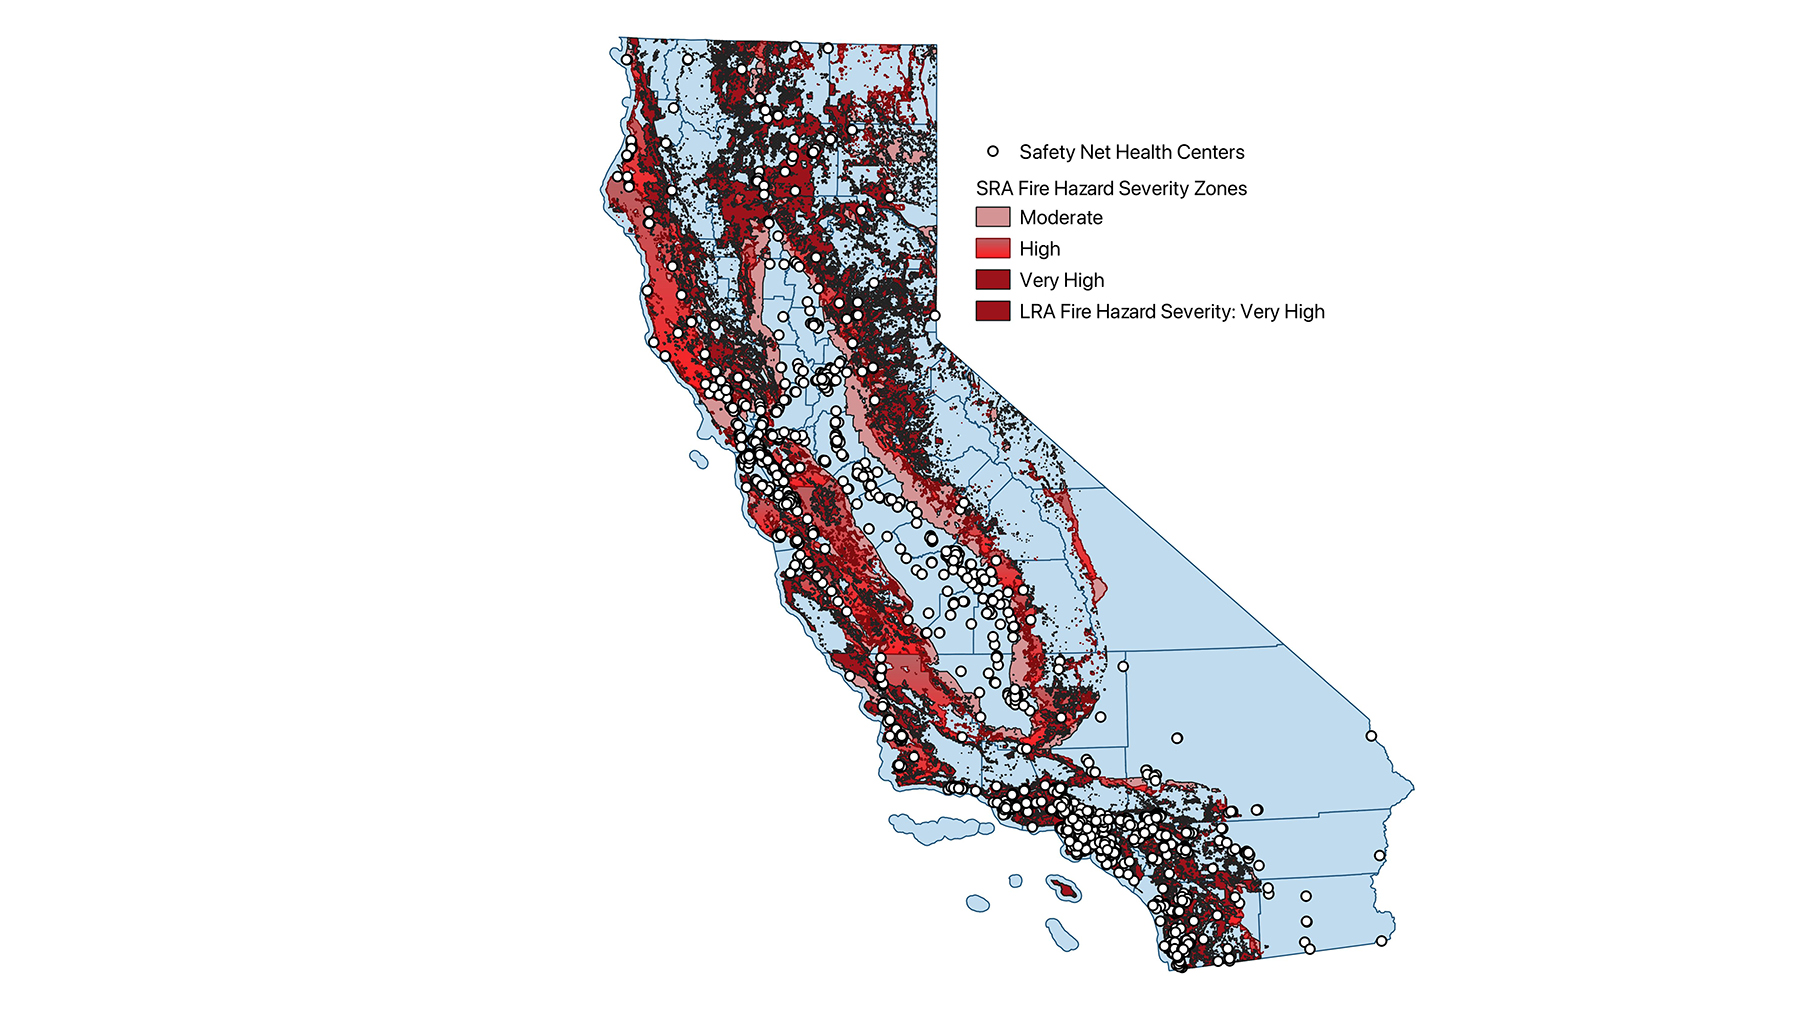 Location of safety net health centers as identified relative to CalFire hazard zones. (Crisis Ready)